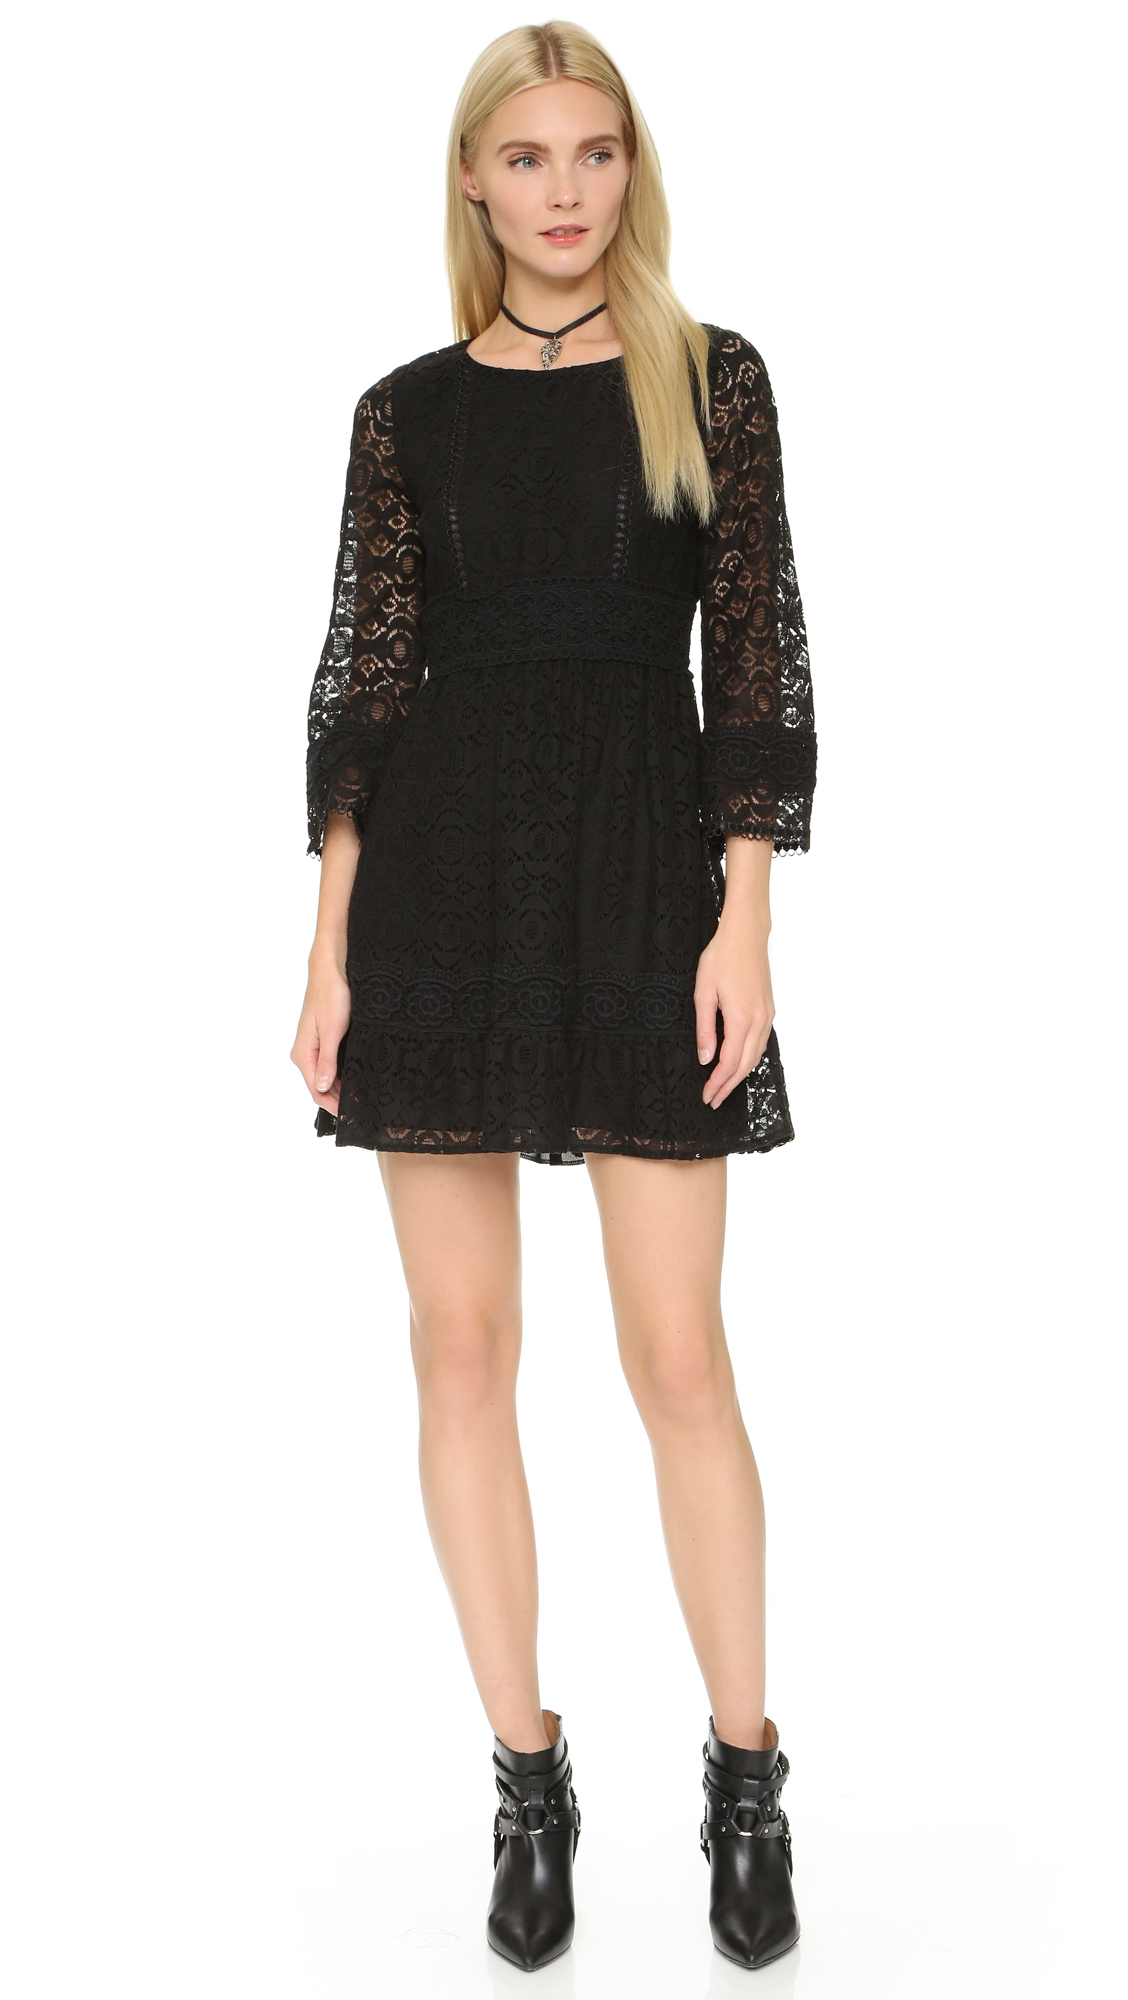 View Anna Sui Lace Dress JPG